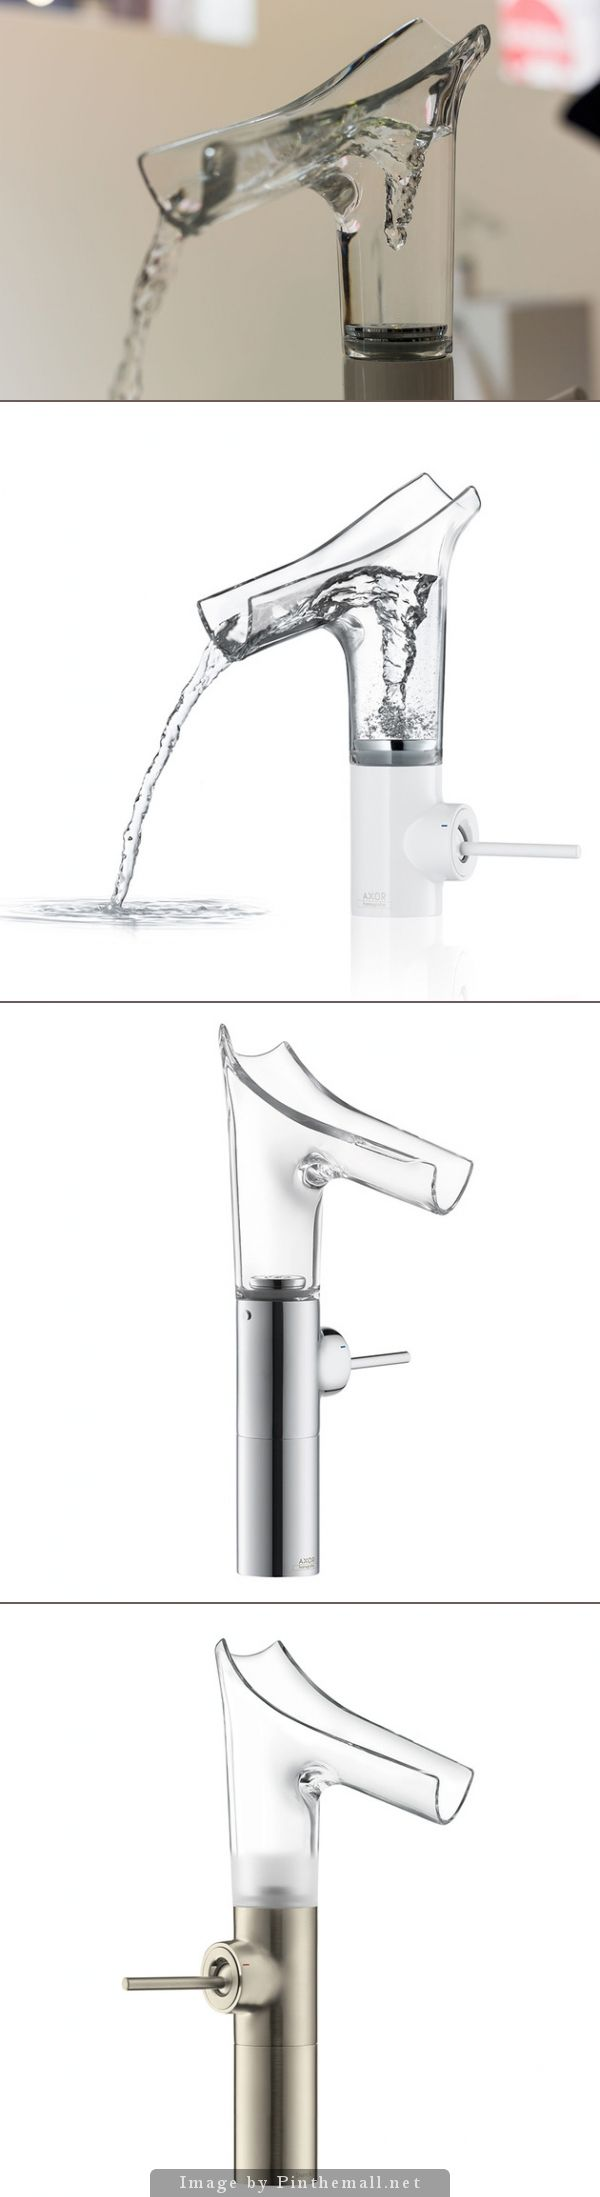 41 Best Images About Hansgrohe On Pinterest Discover